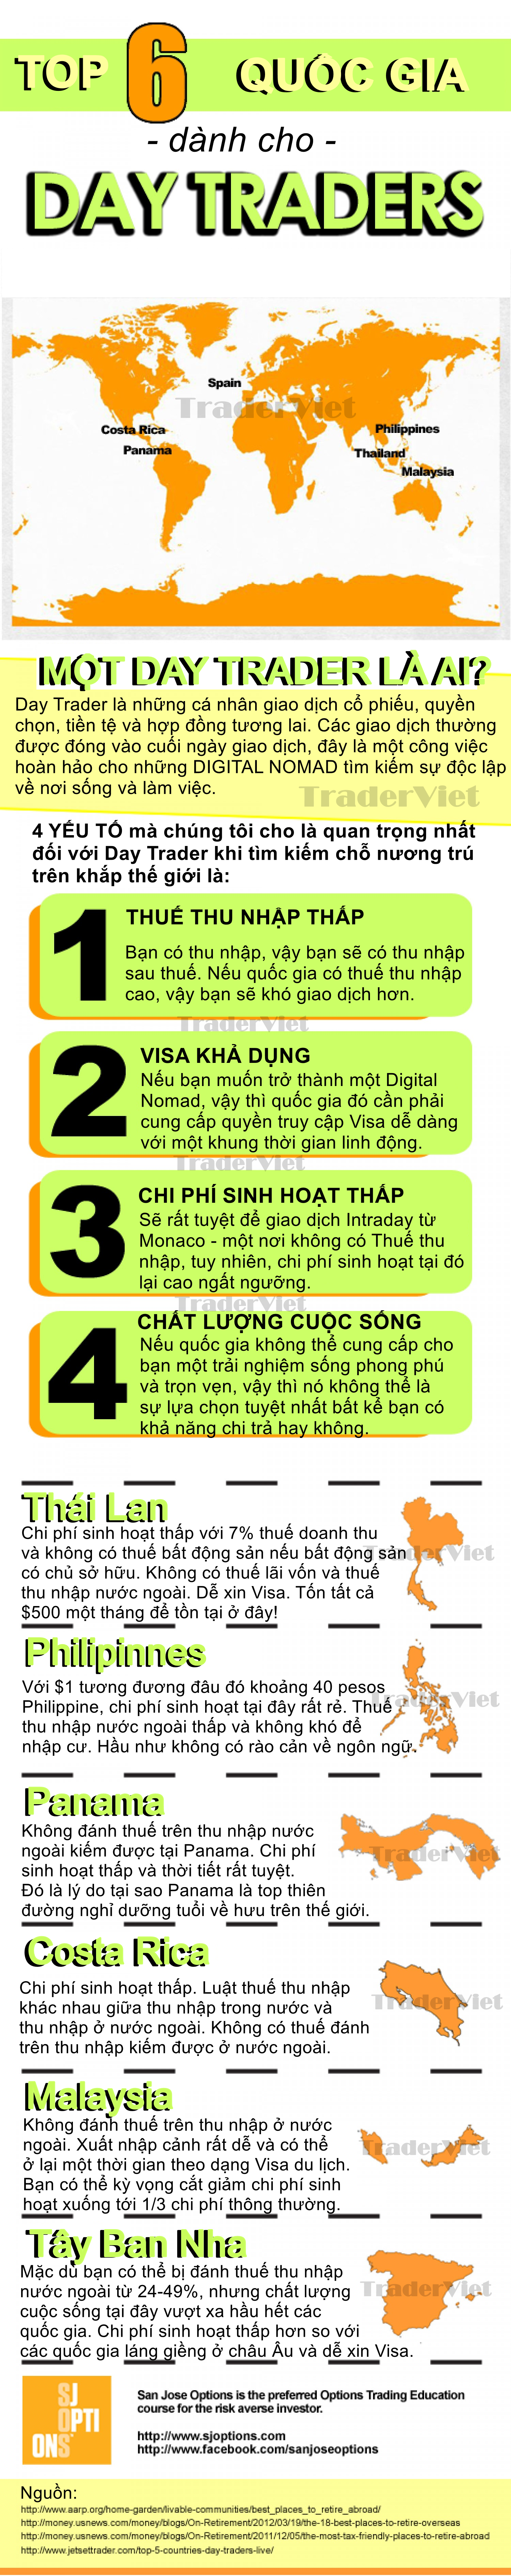 Infographic-Top-6-quoc-gia-la-thien-duong-tru-ngu-tuyet-dinh-cho-Day-Trader-TraderViet.